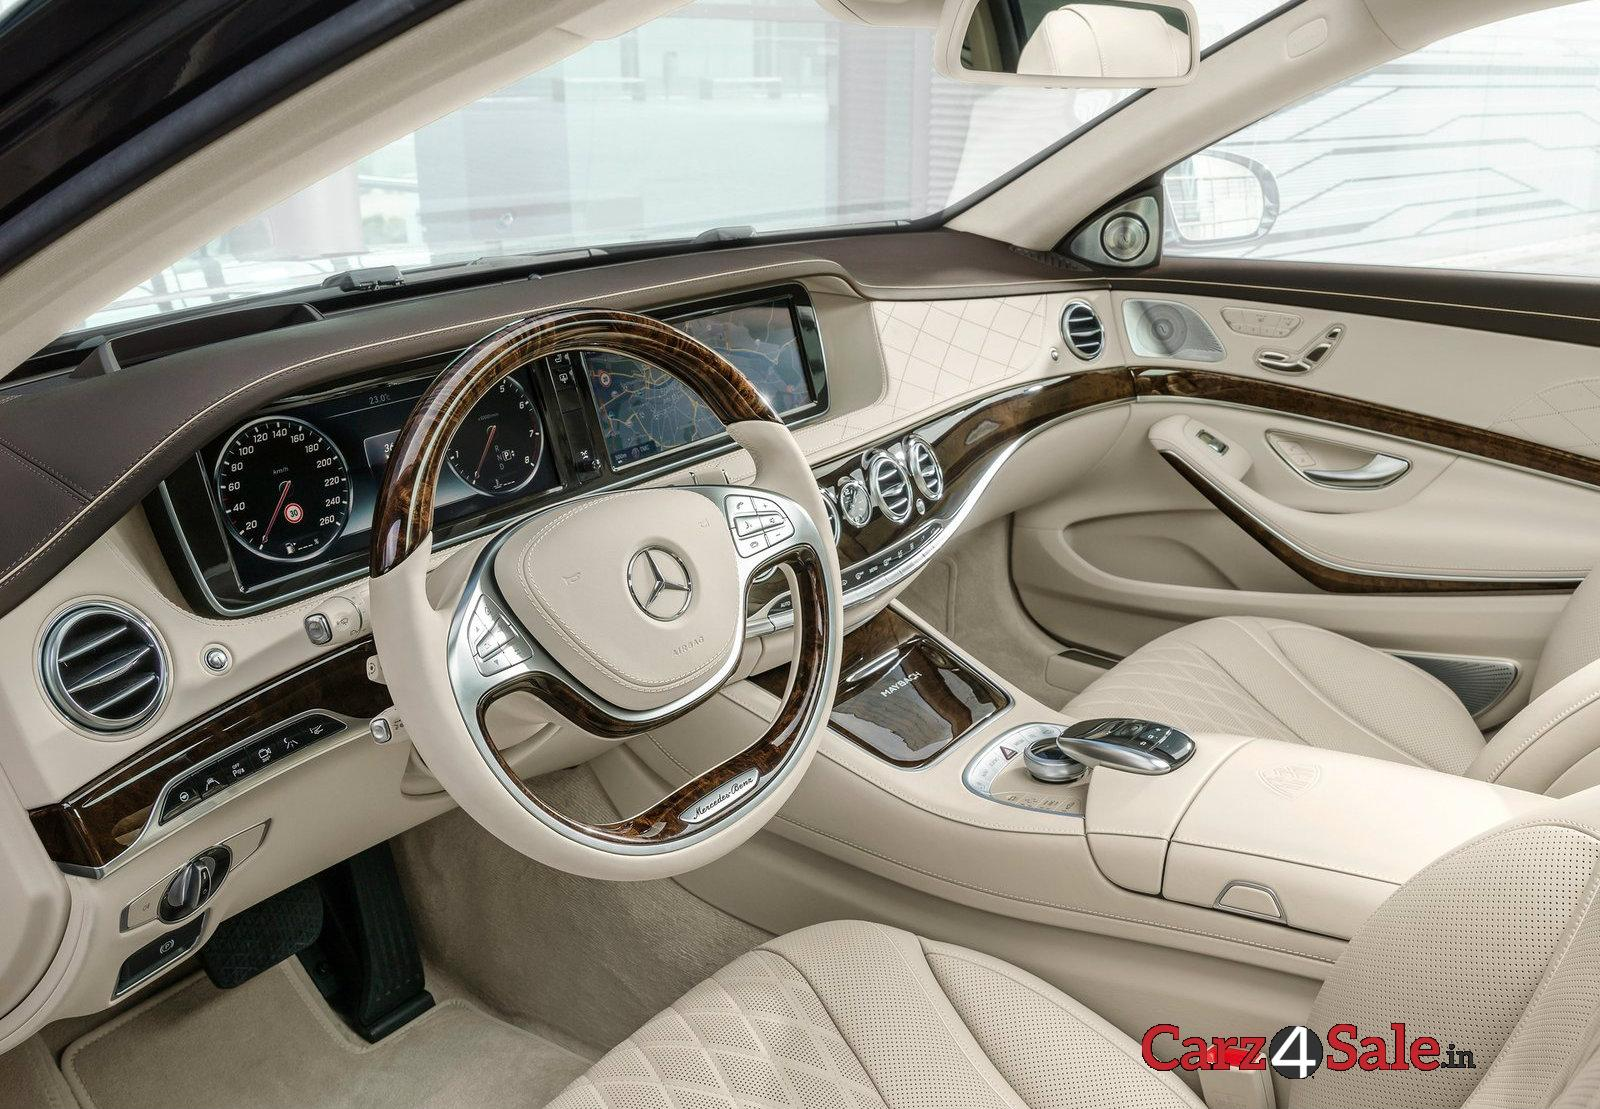 Mercedesmaybach S600 Drivers Cabin Front